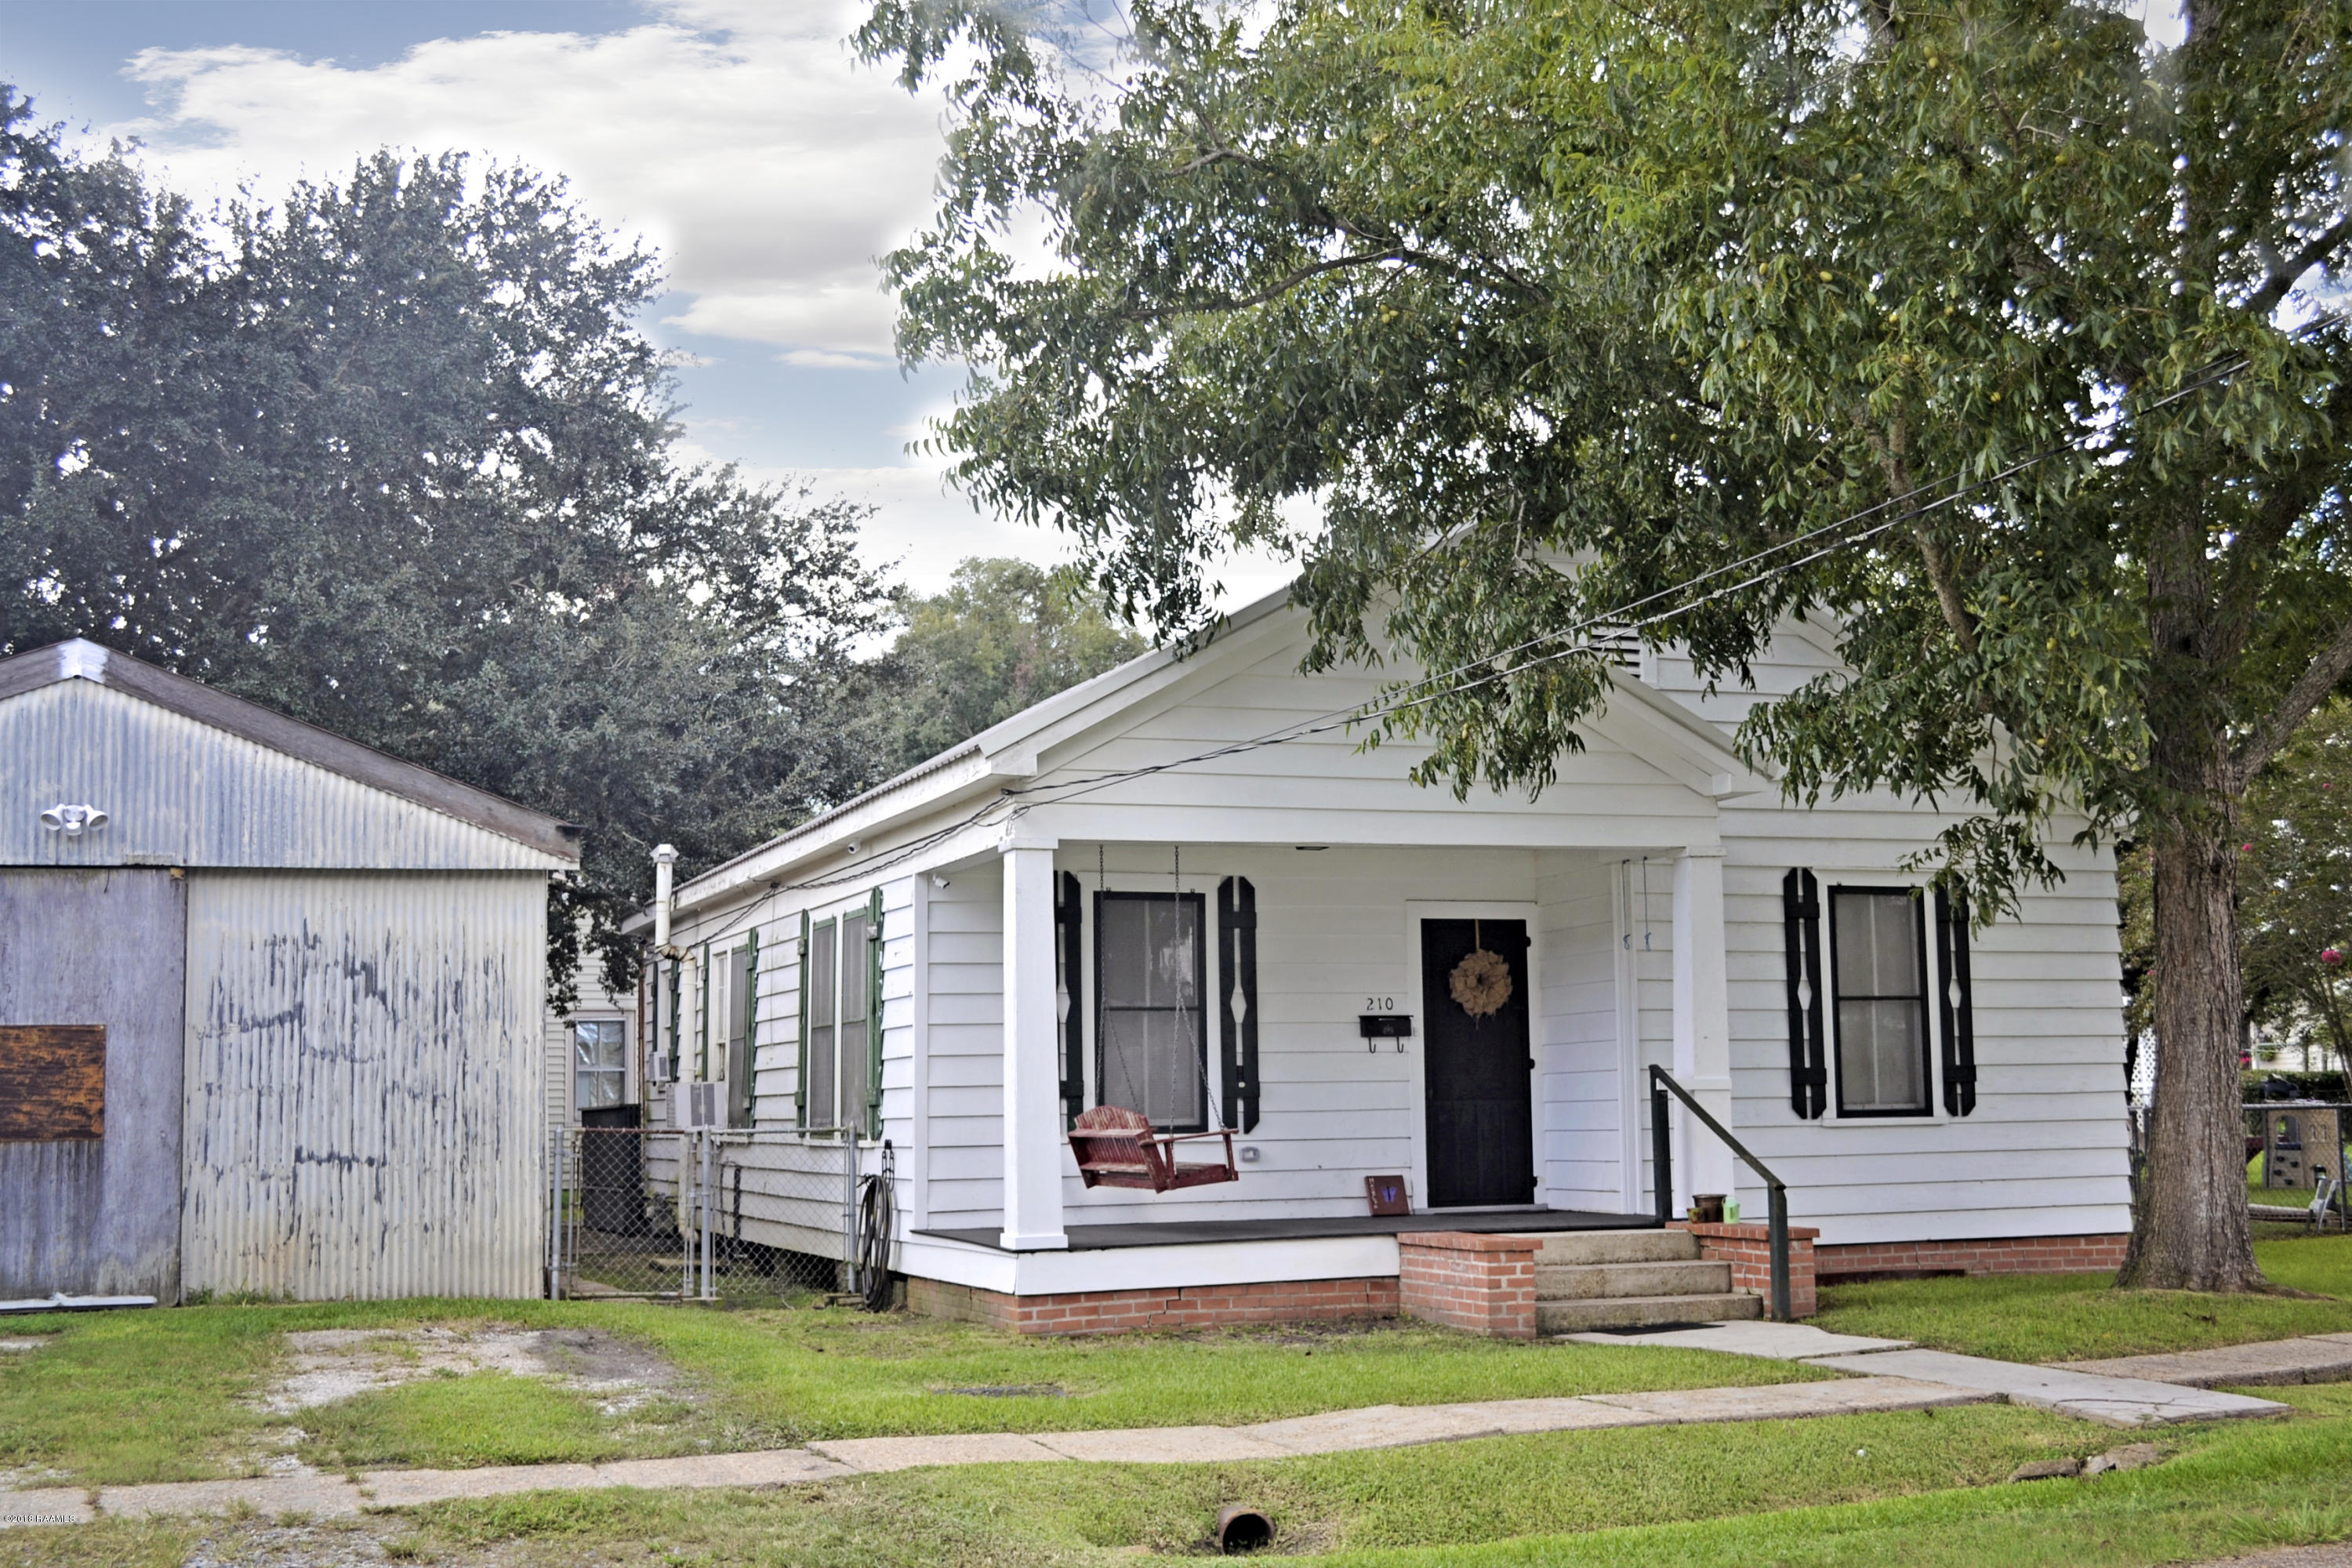 210 Louisiana Street, Jeanerette, LA 70544 Photo #1